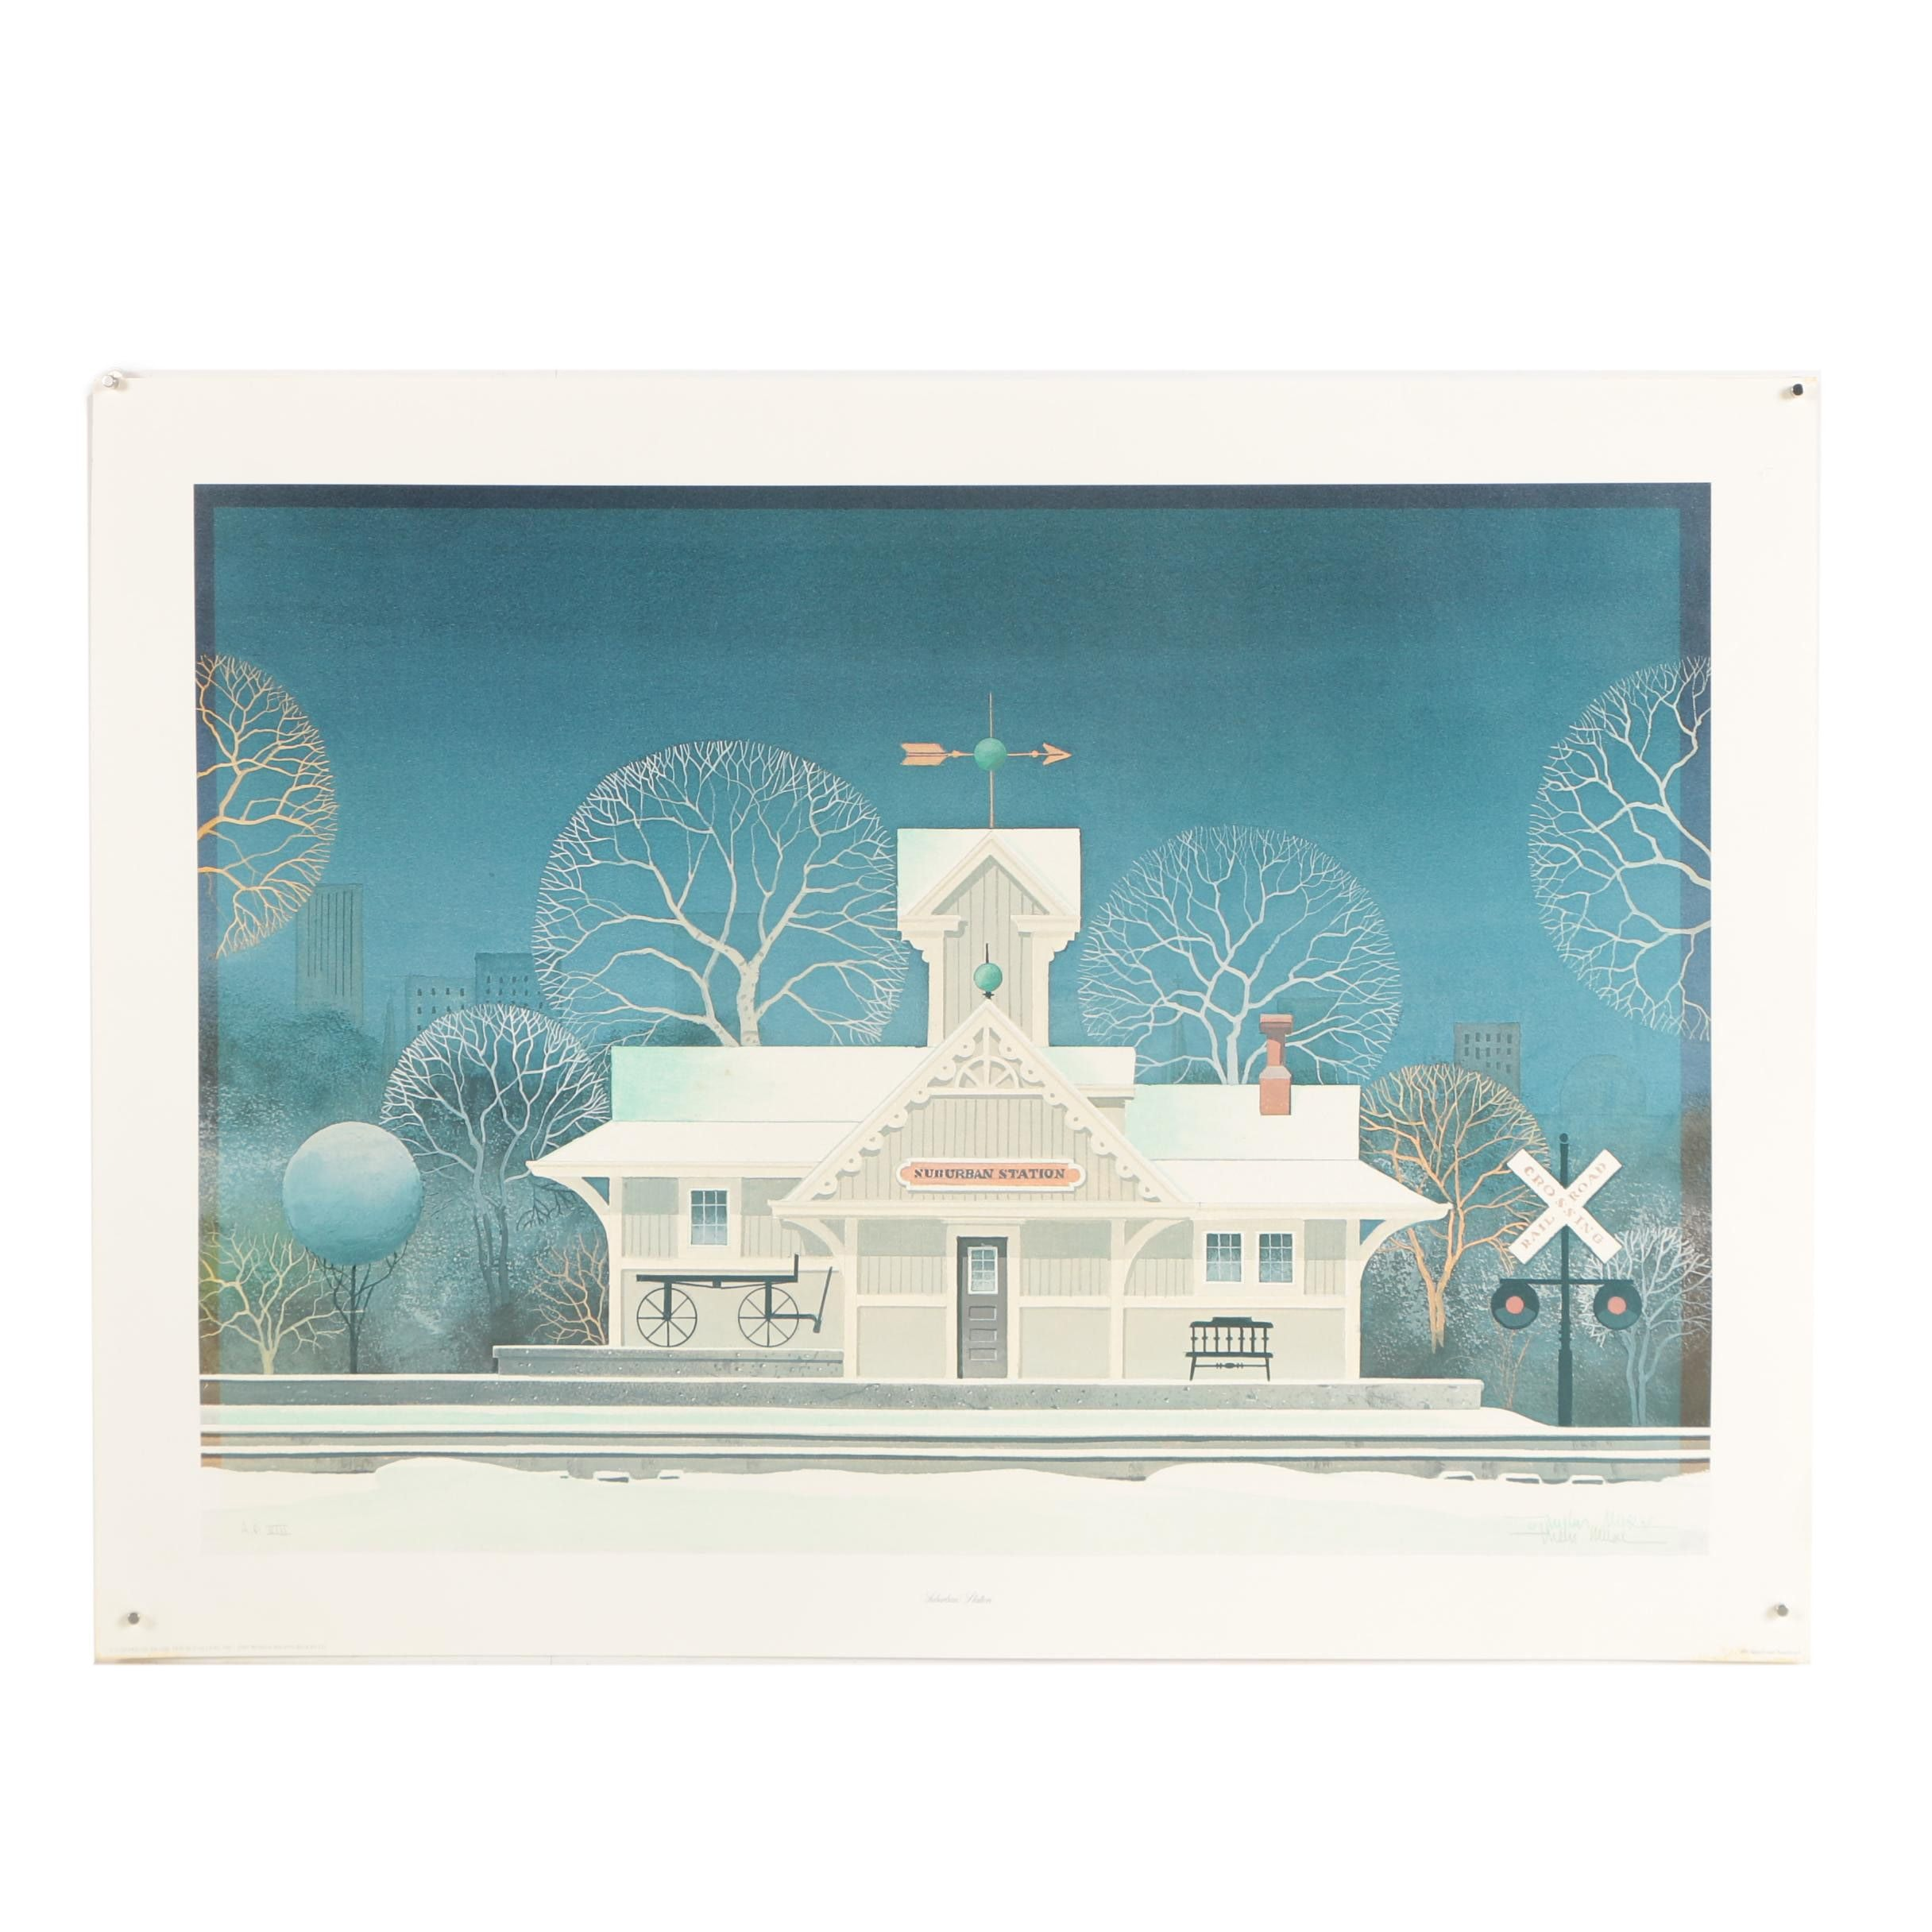 "Wilbur Meese Signed Offset Lithograph ""Suburban Station"""